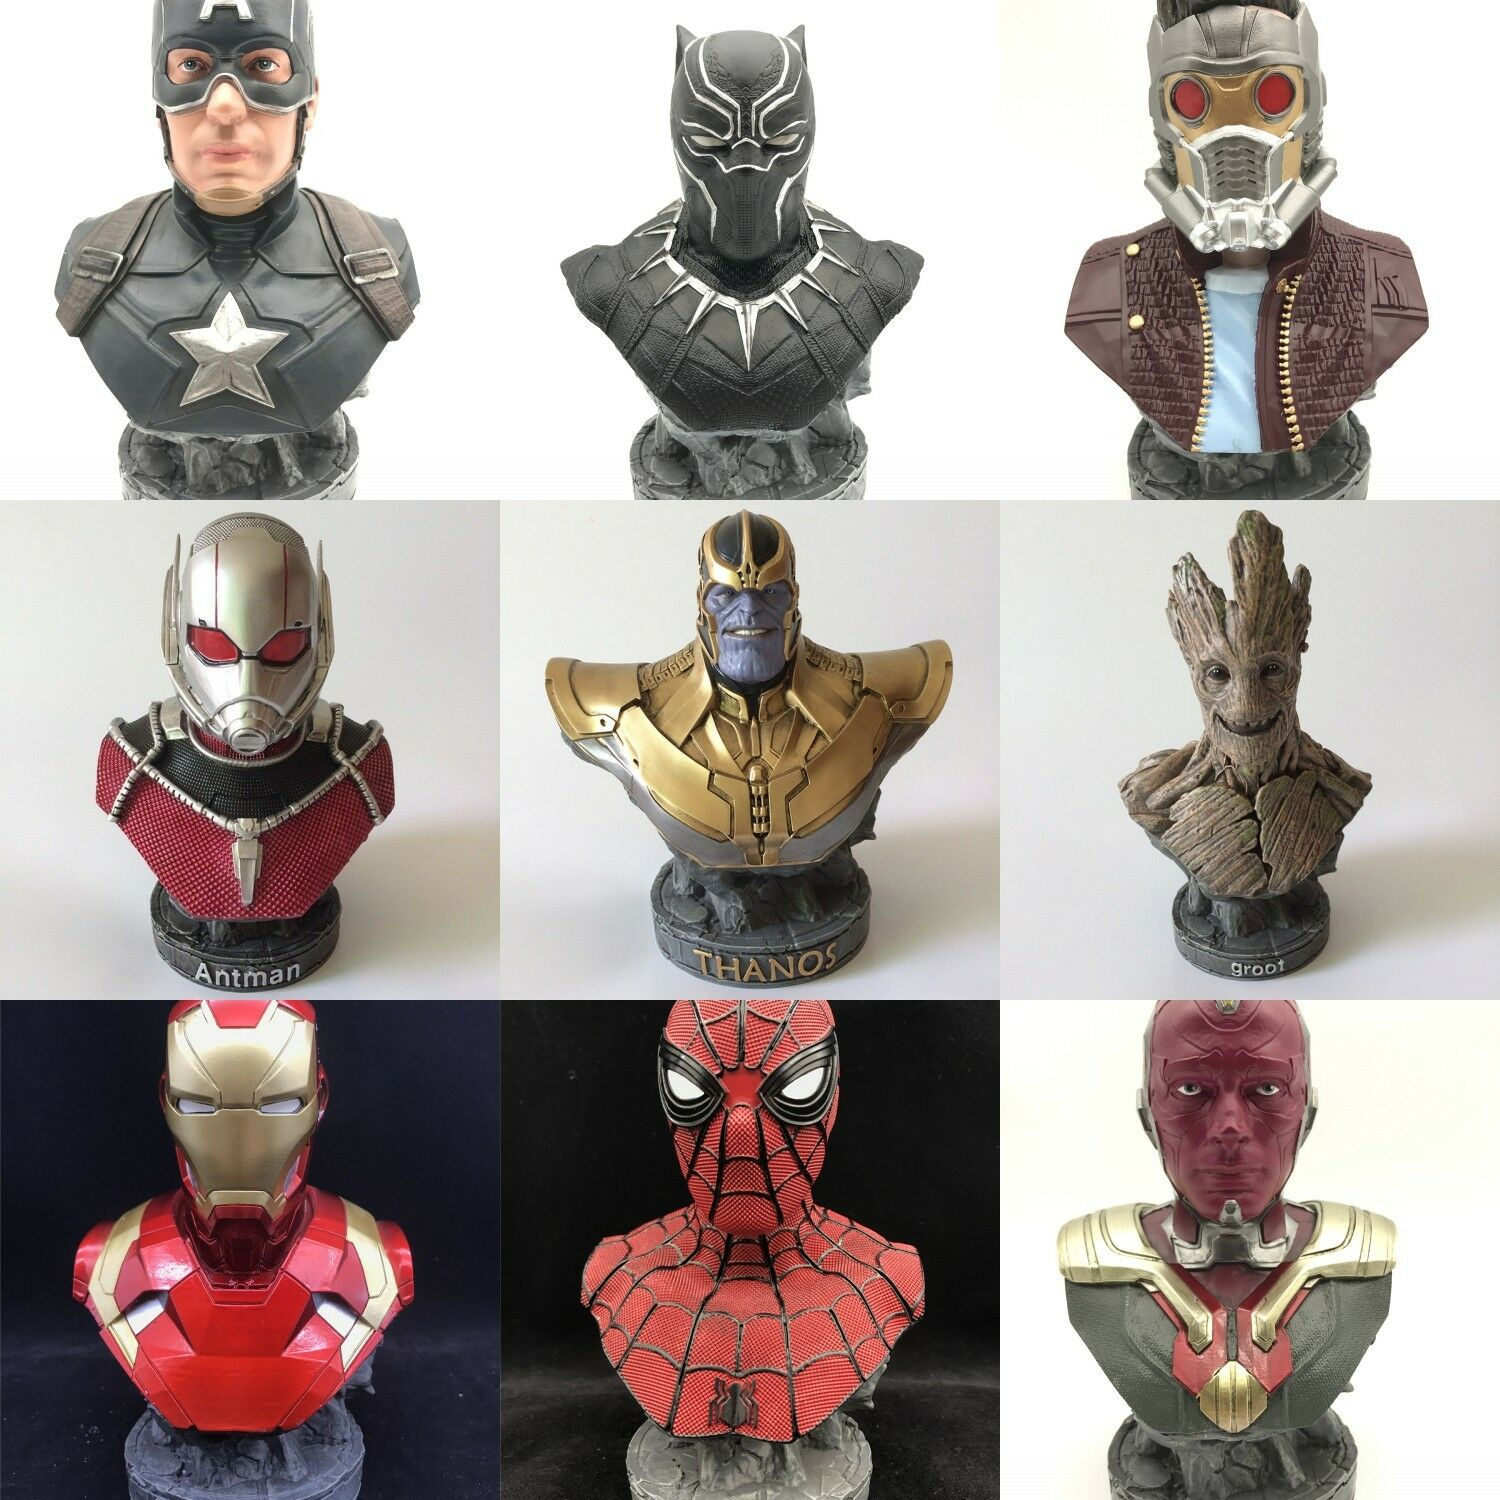 MARVEL COMICS SUPER HERO L'ÉCHELLE 1 4 Buste Statue Figurines de Collection Figure